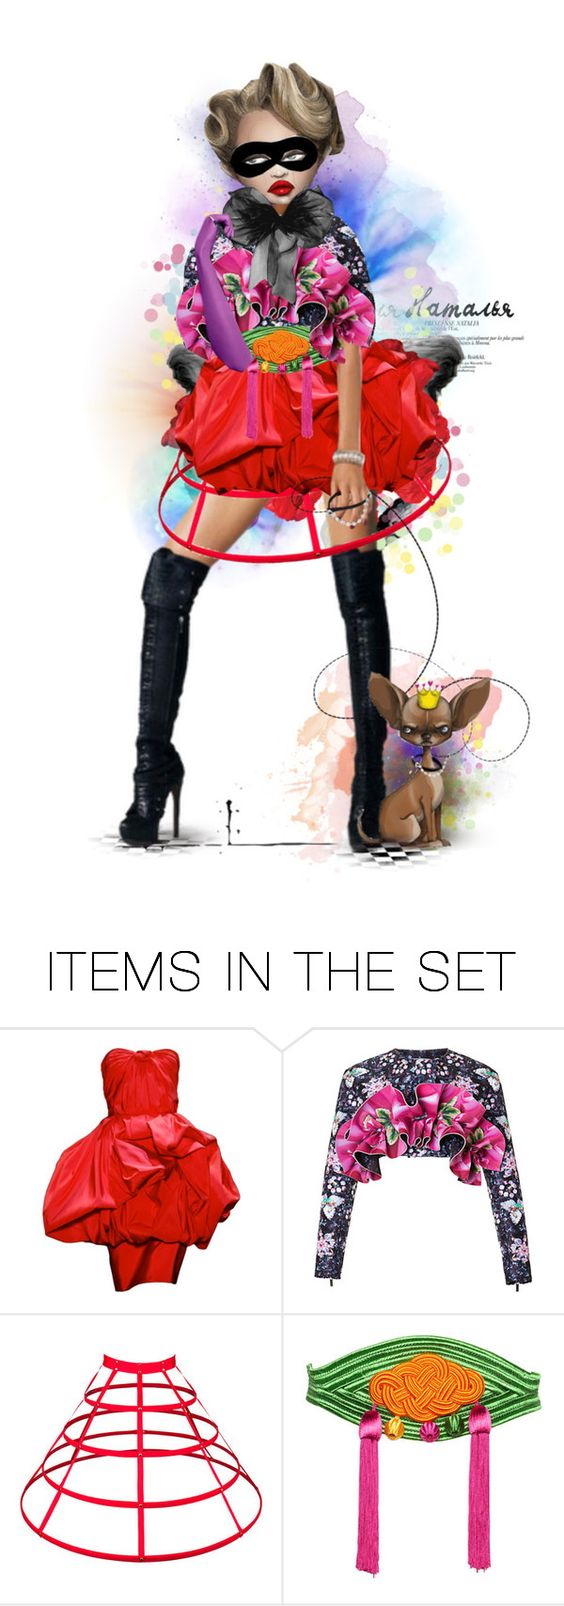 """""""Scapin's World"""" by pynkk ❤ liked on Polyvore featuring art"""